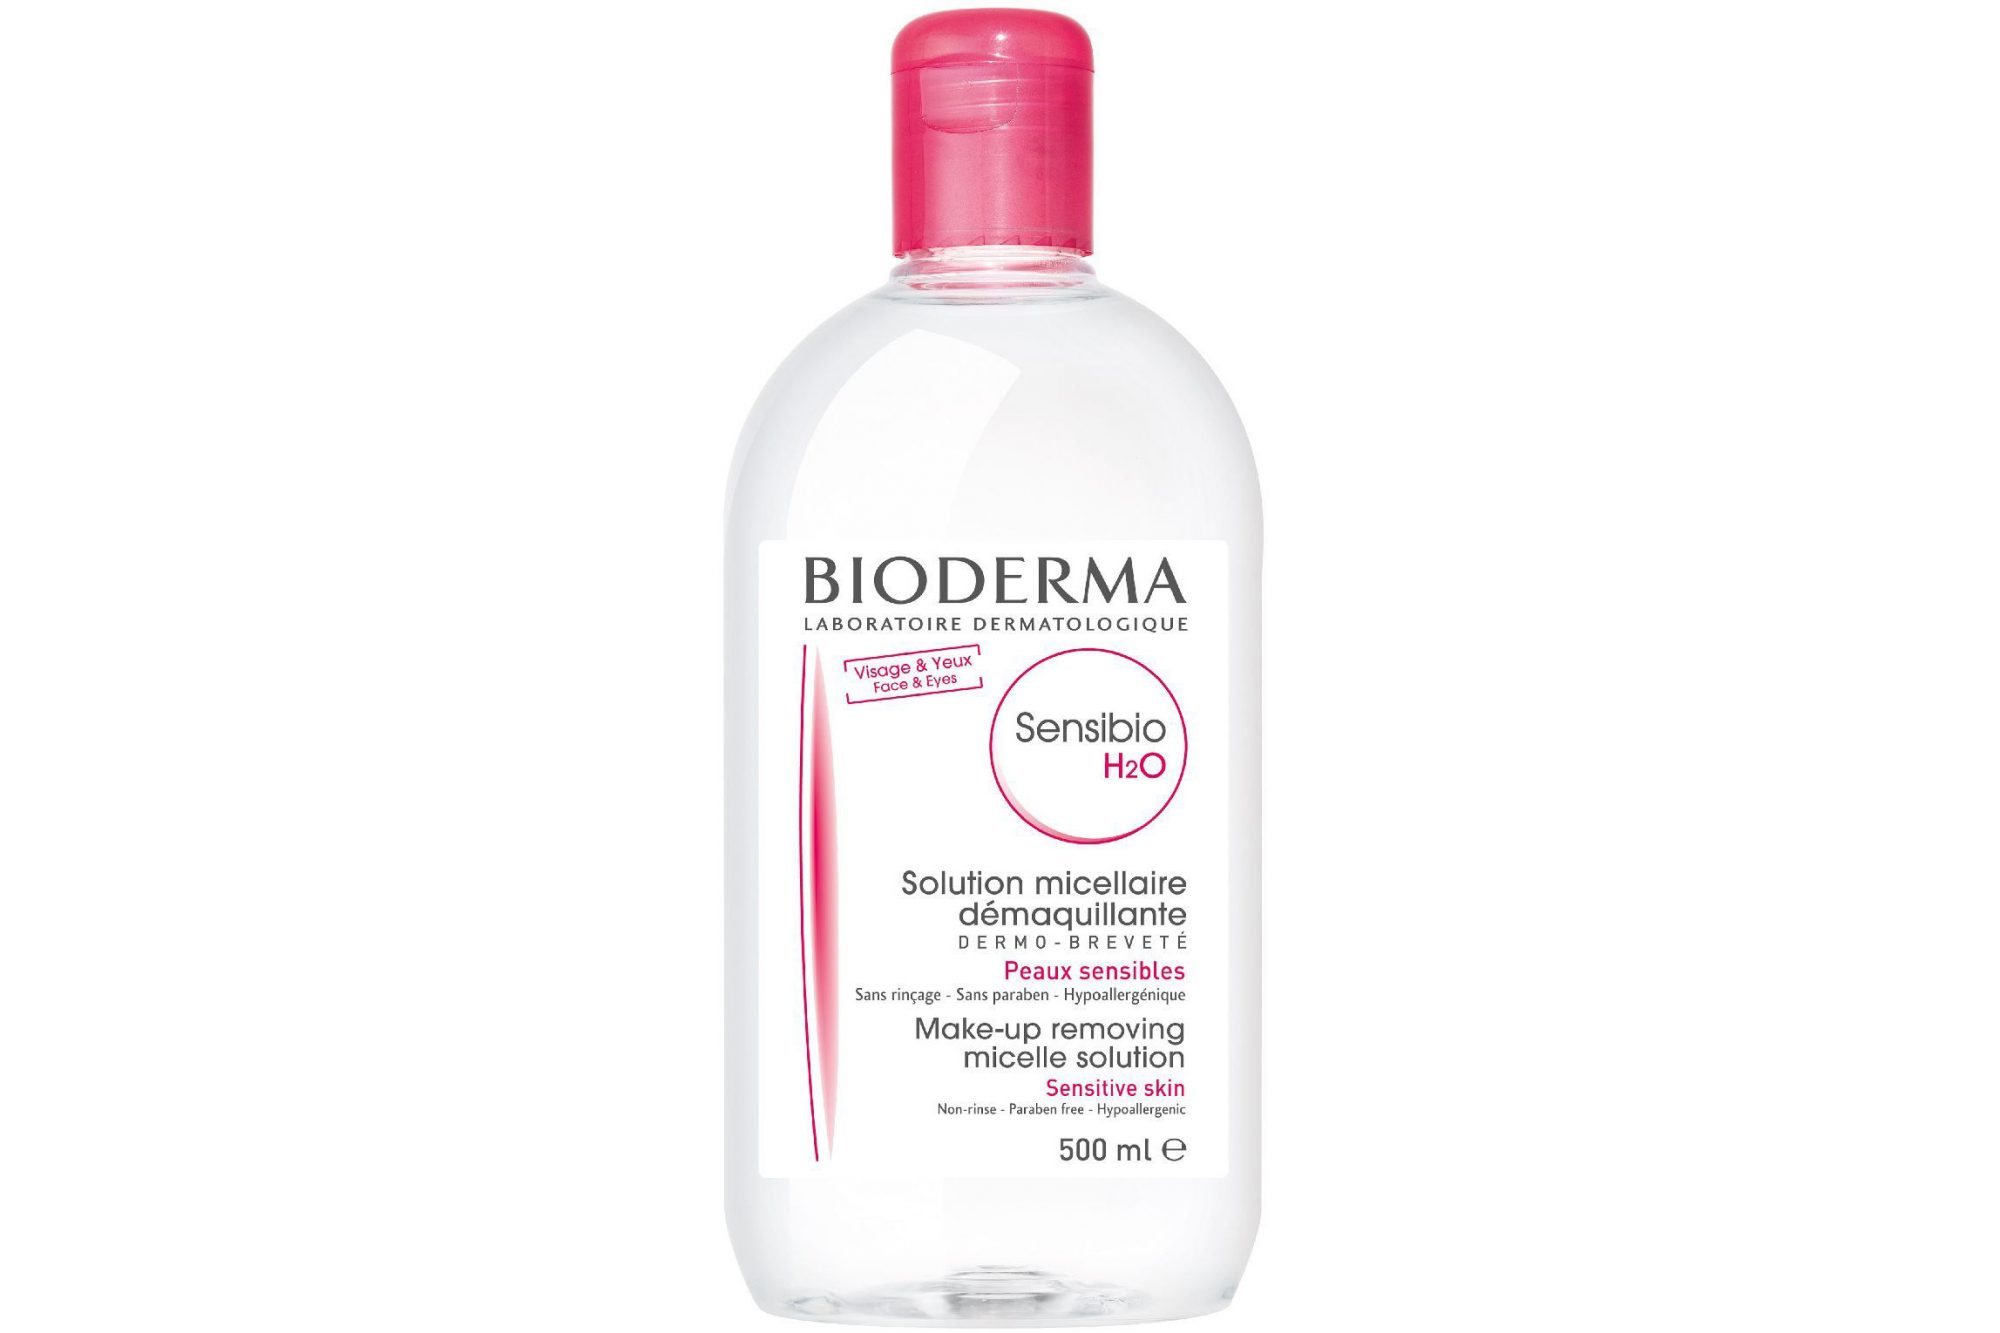 iconic-beauty-products-bioderma.jpg